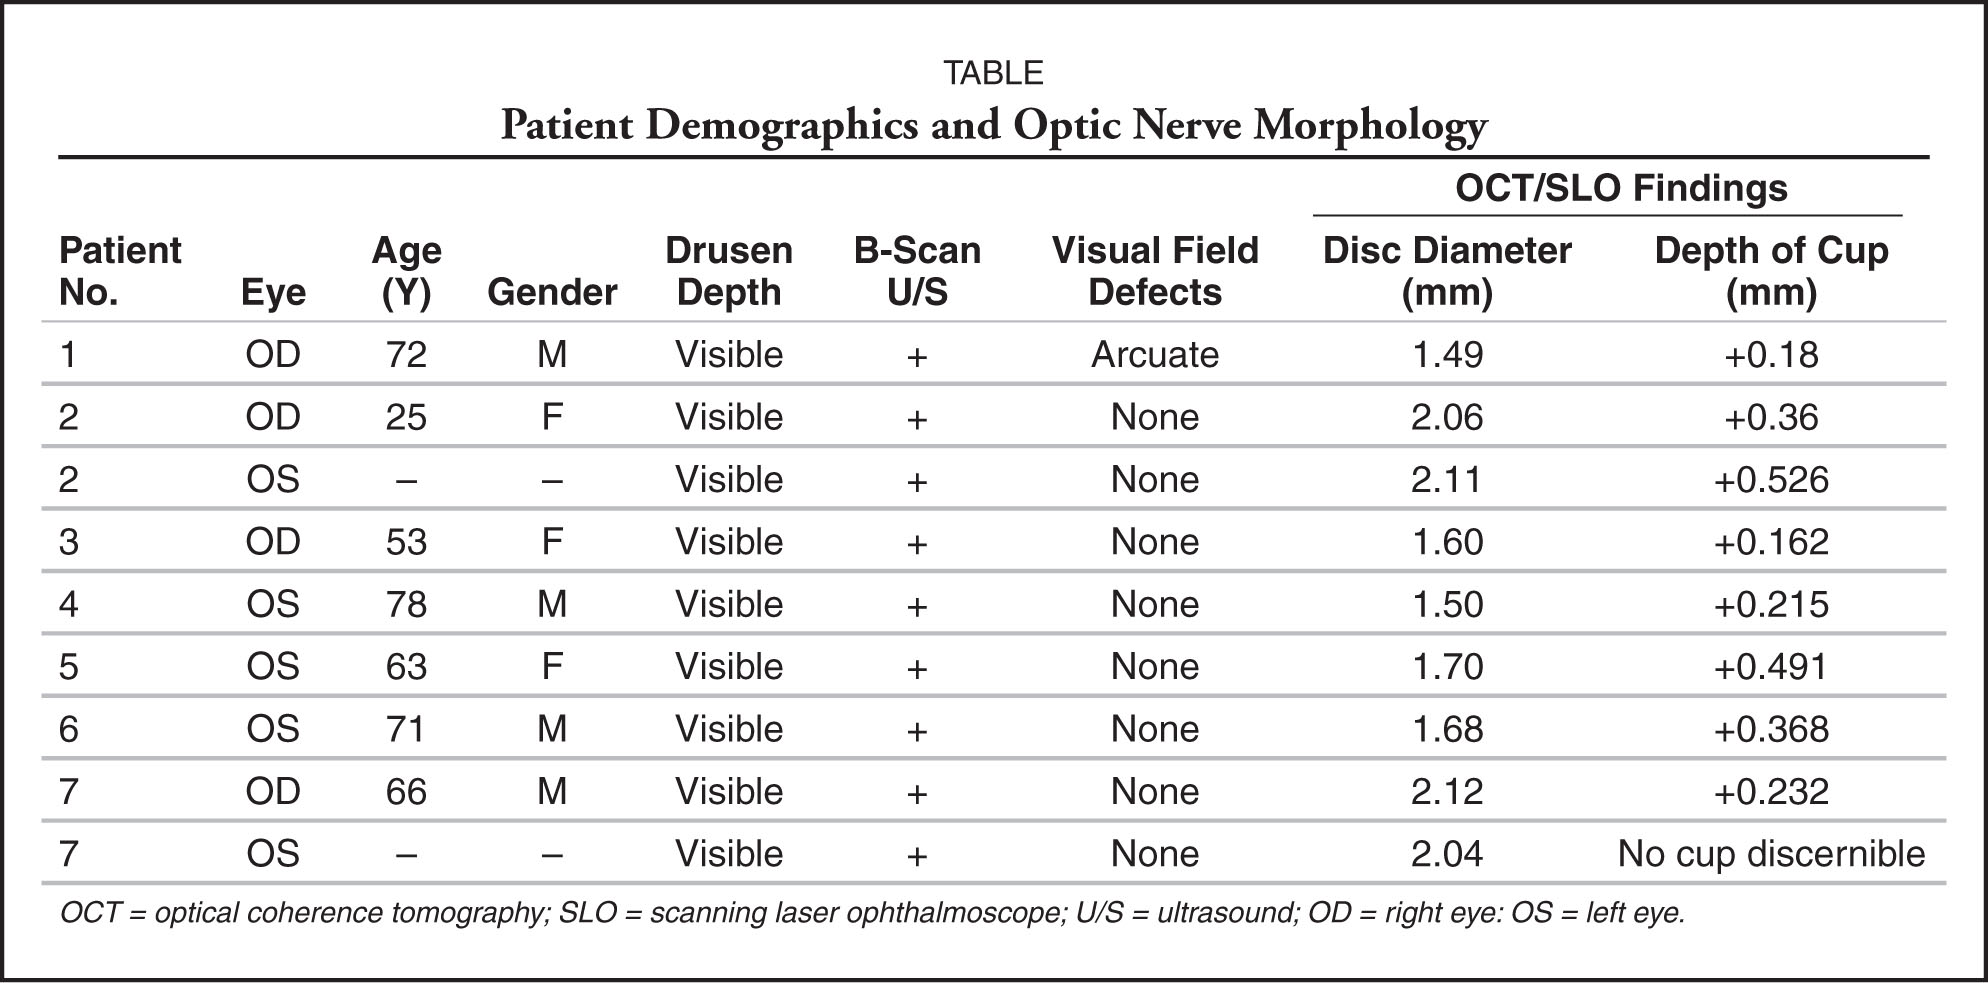 Patient Demographics and Optic Nerve Morphology